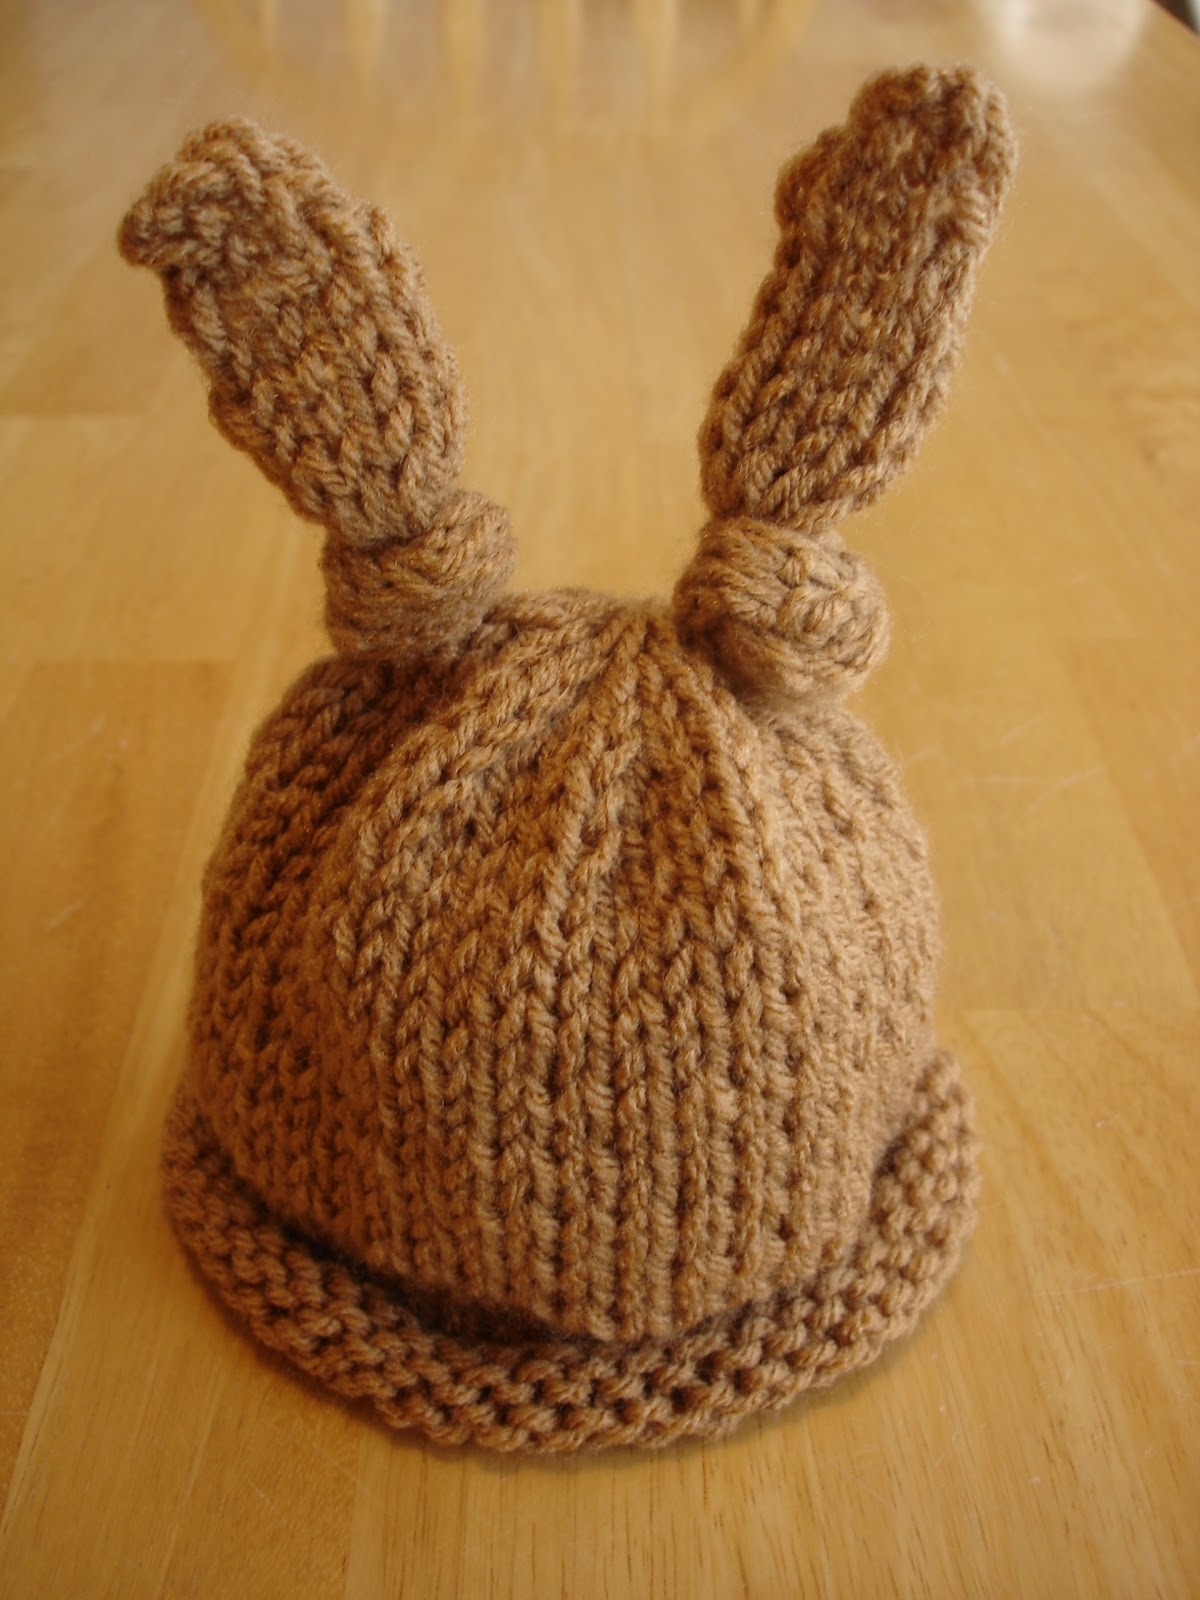 Free Baby Hats Knitting Patterns : Fiber Flux: Free Knitting Pattern...Baby Bunny Newborn or Preemie Hat!